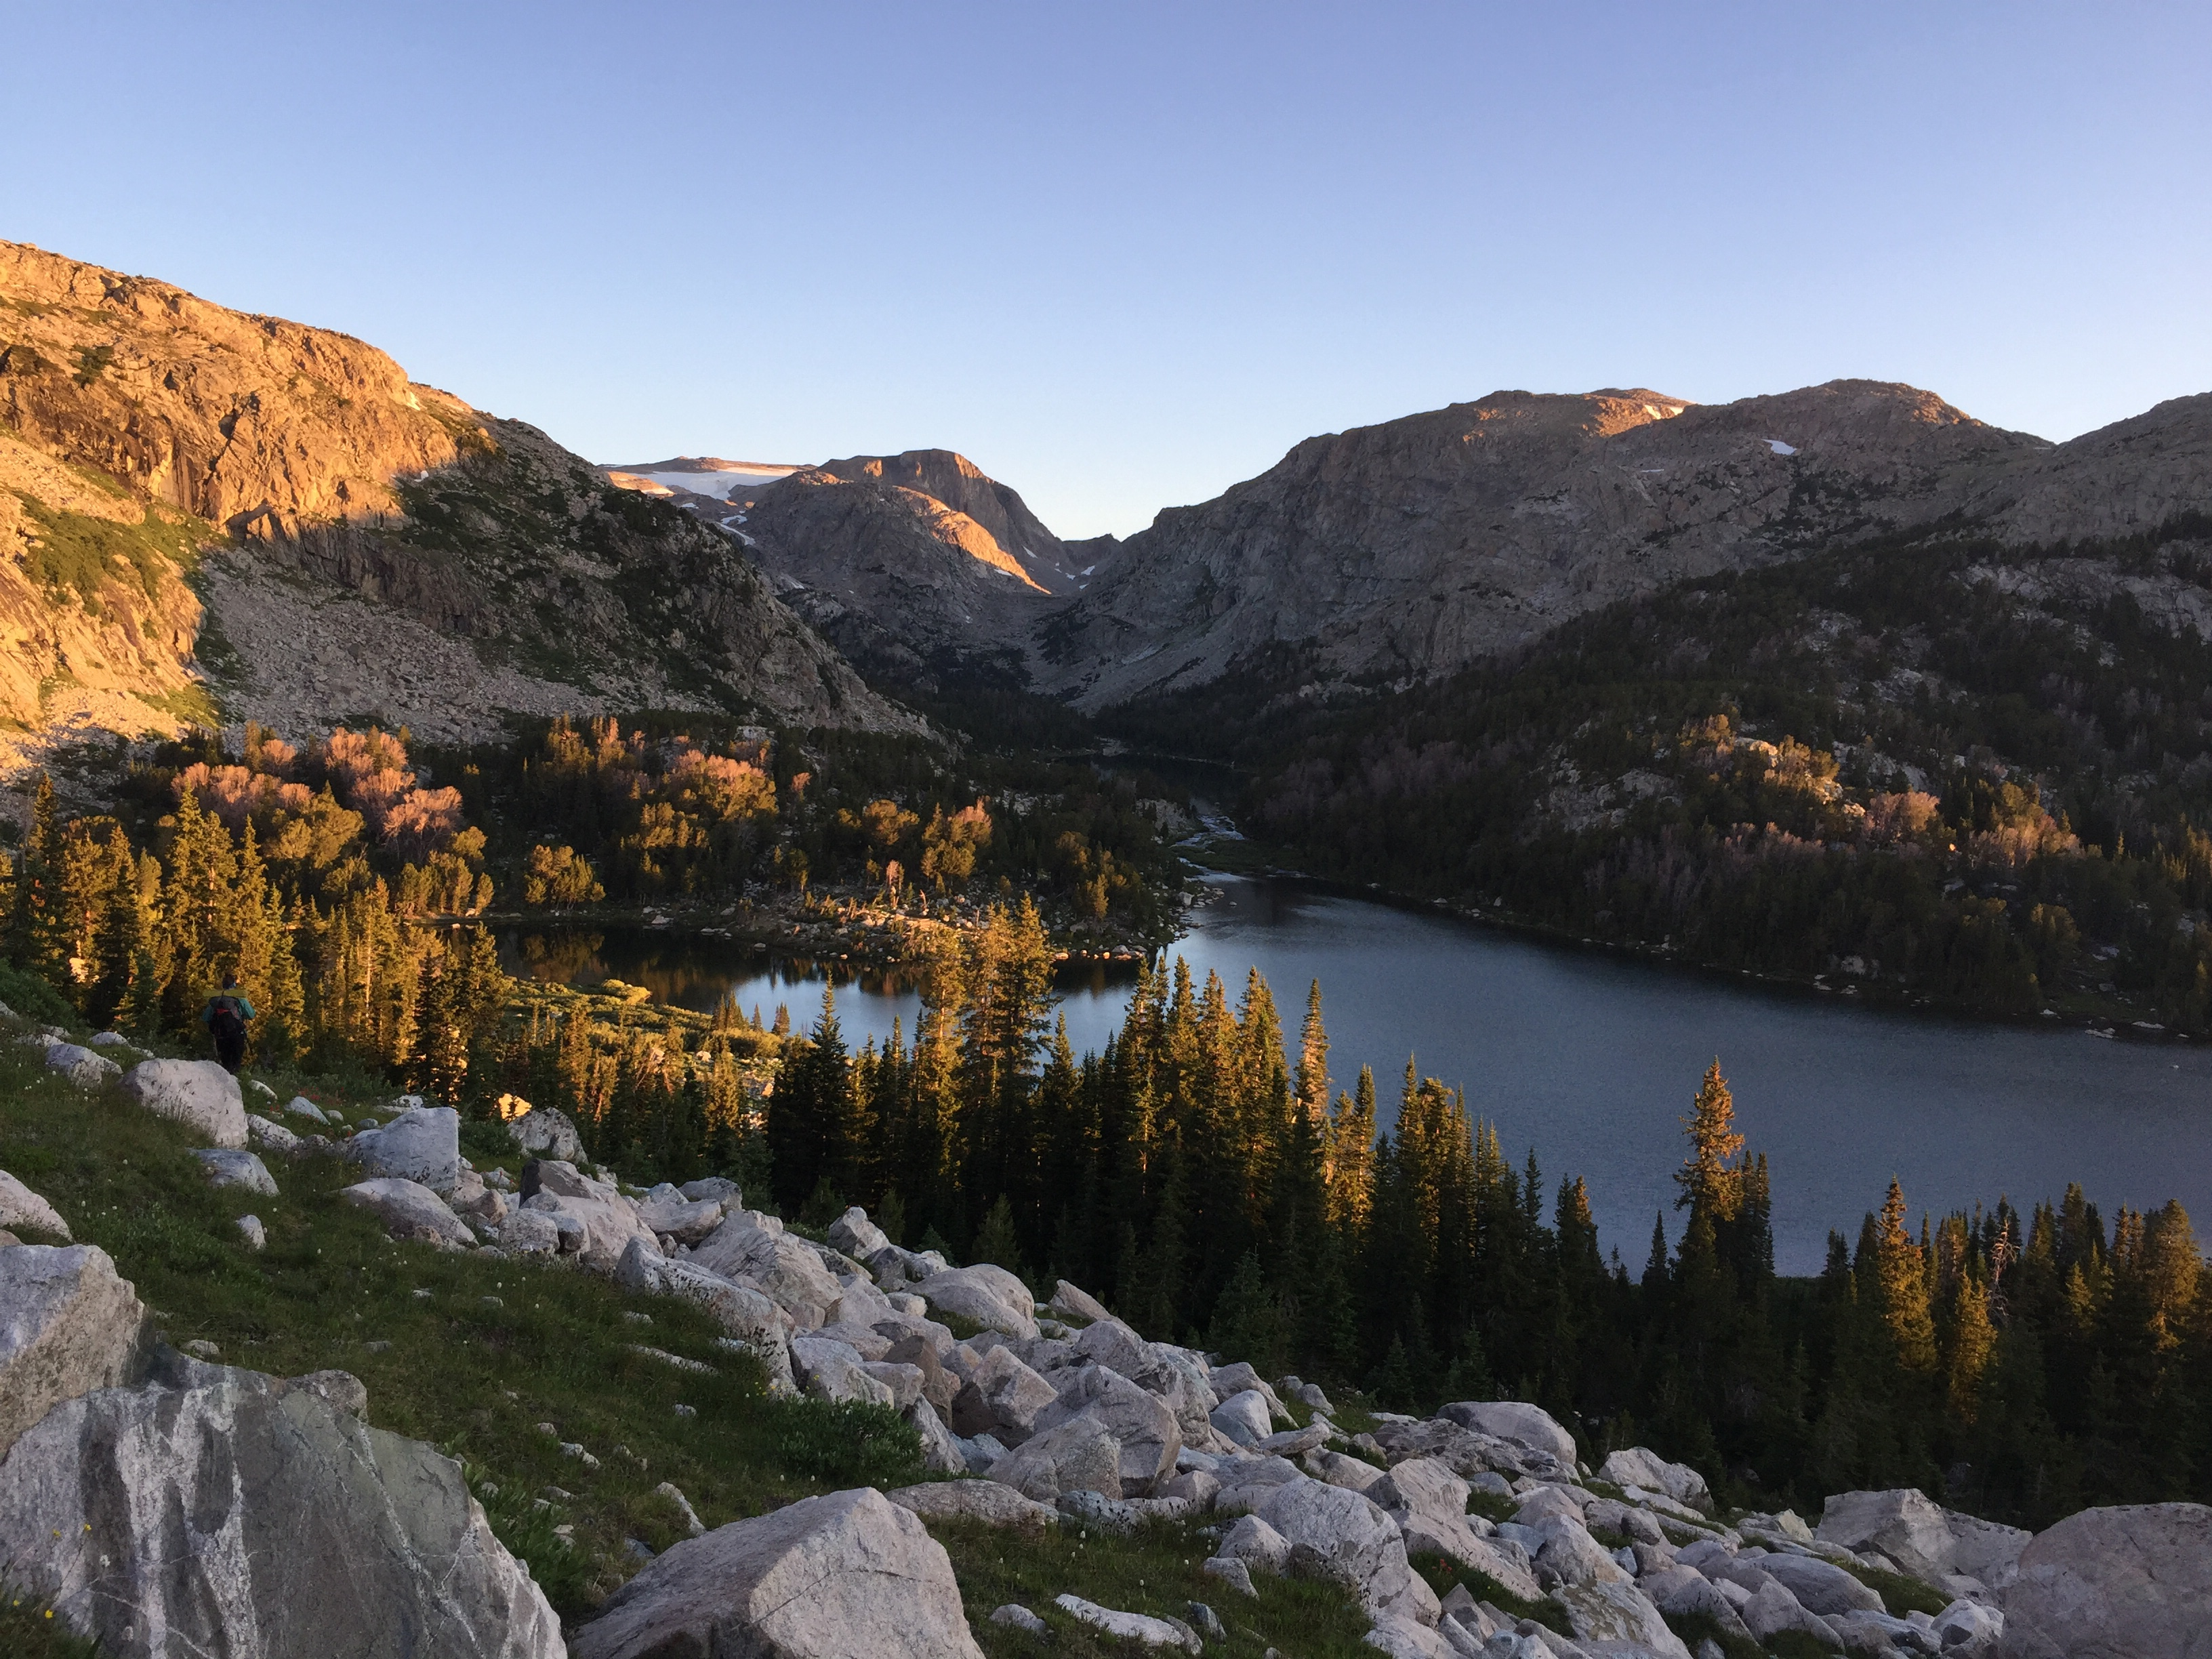 Wind River Range High Route FKT